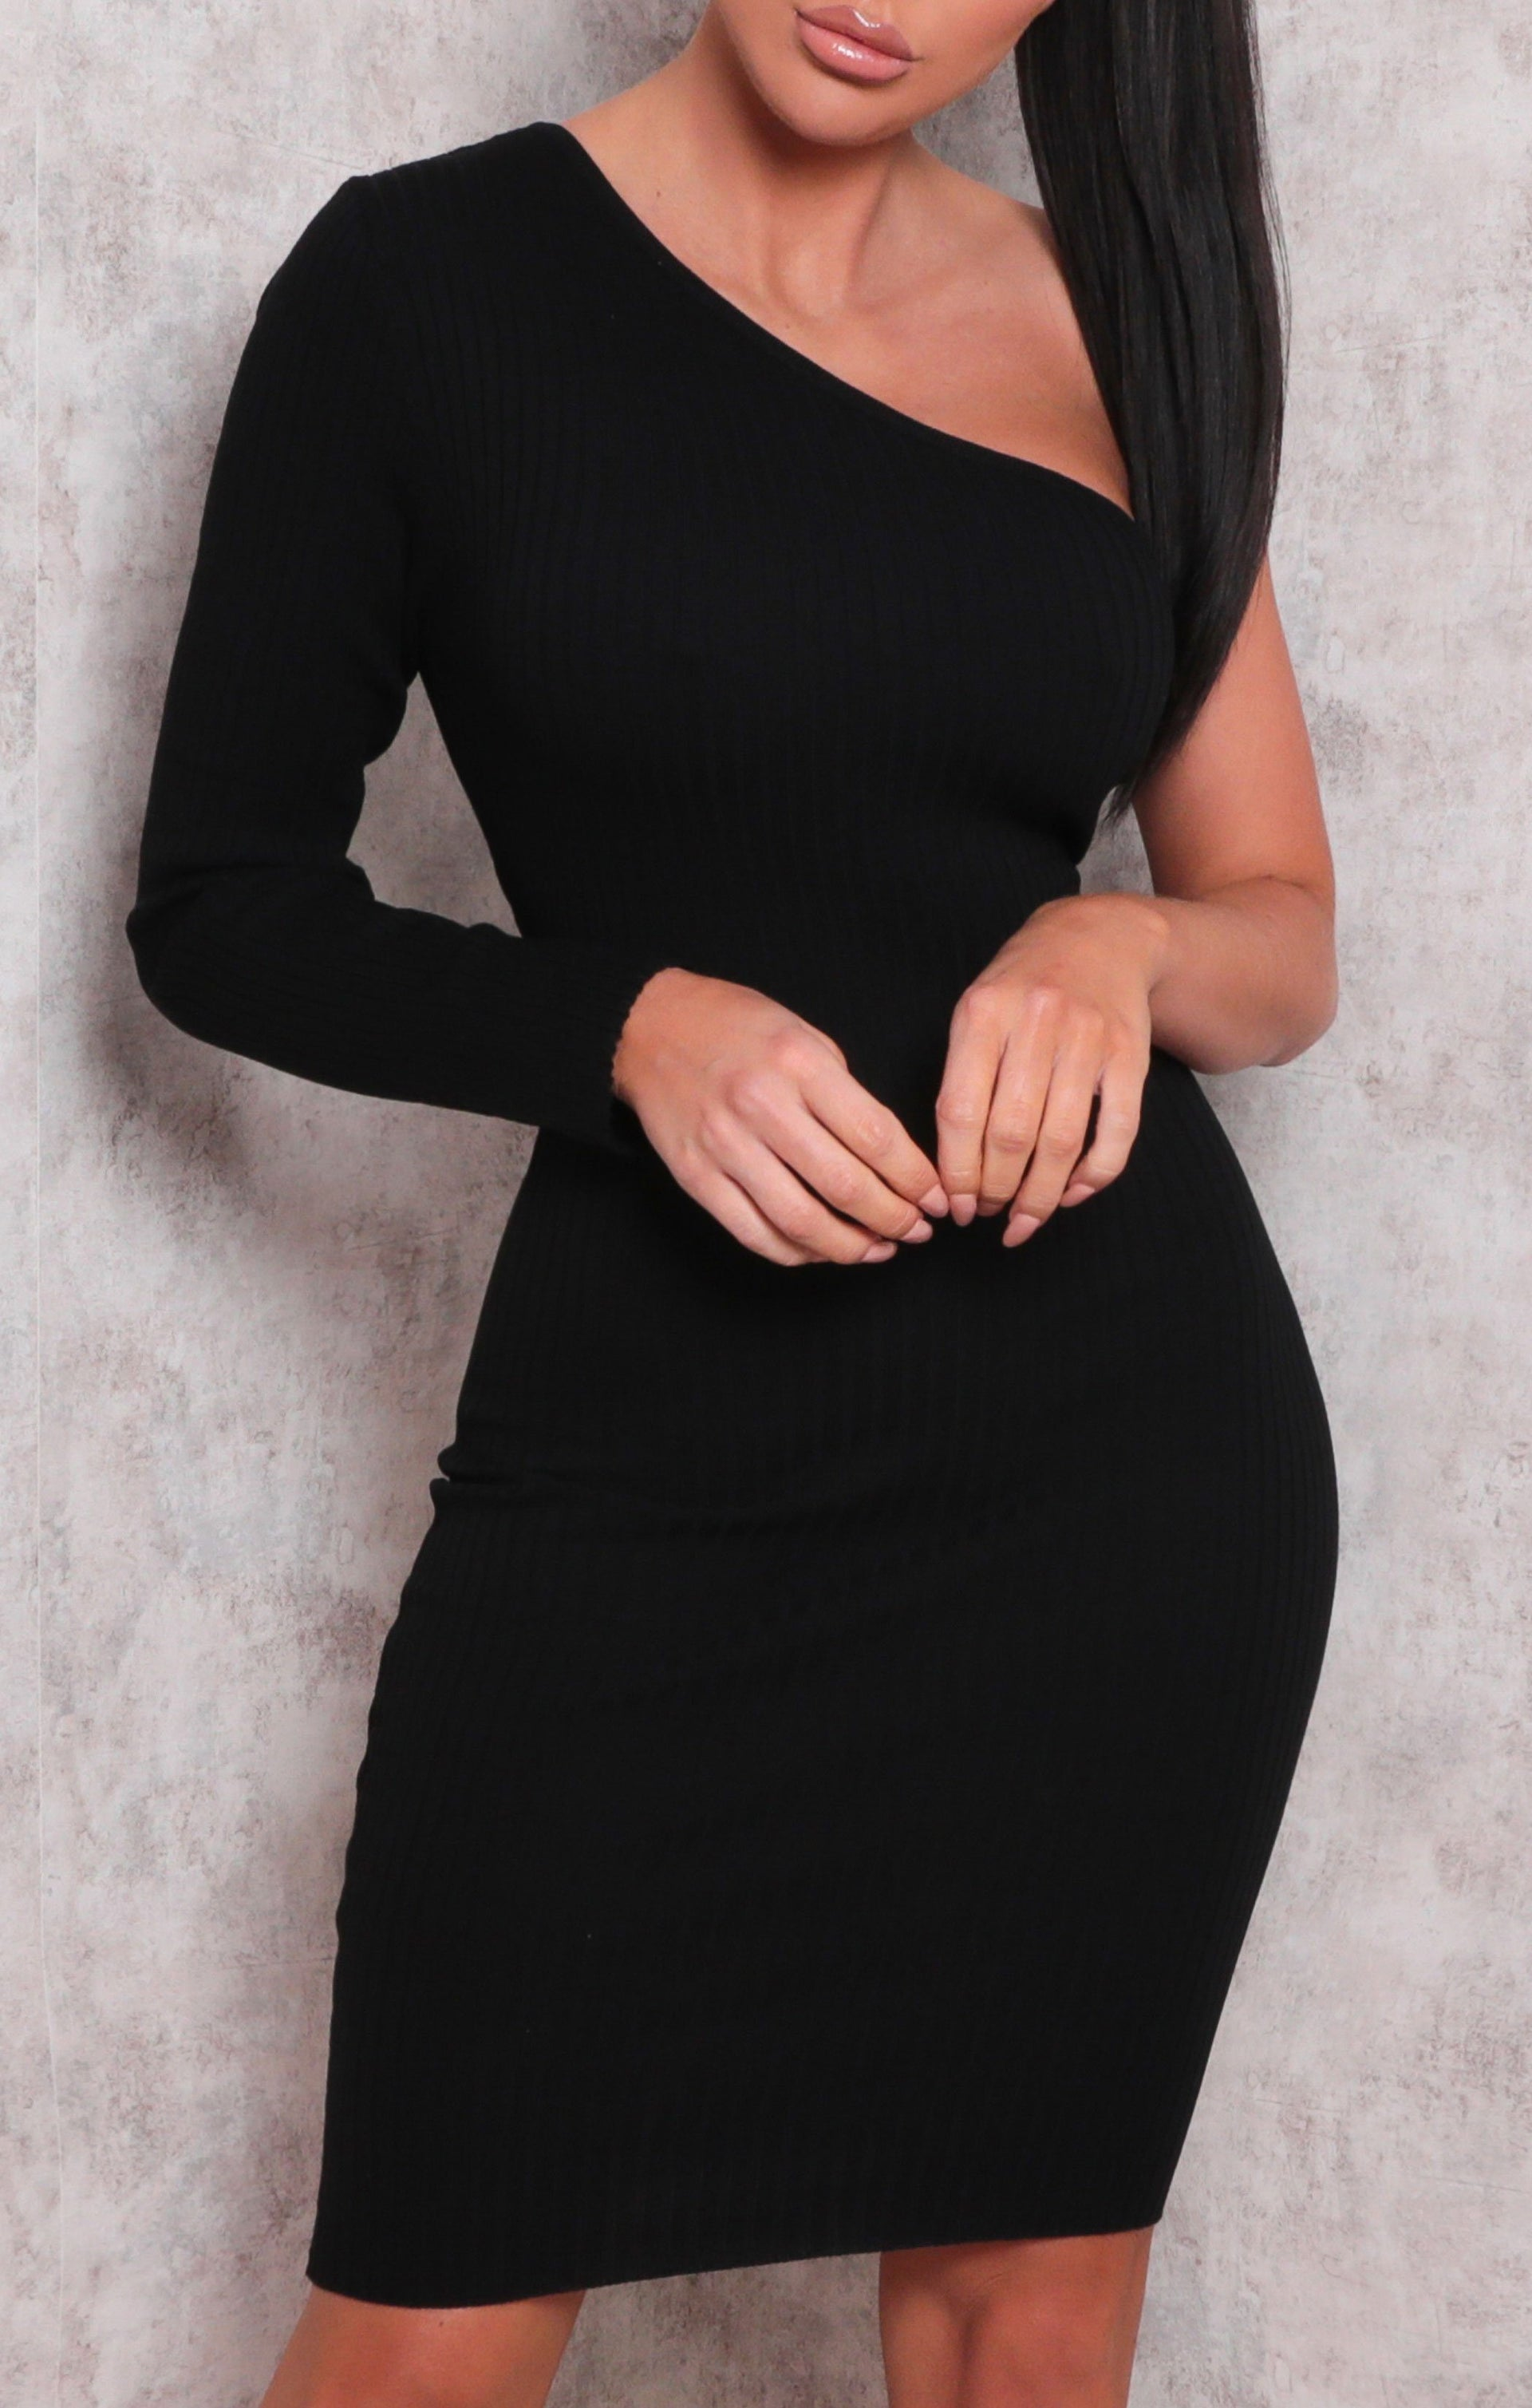 Black Ribbed One Shoulder Bodycon Mini Dress - Sabrina